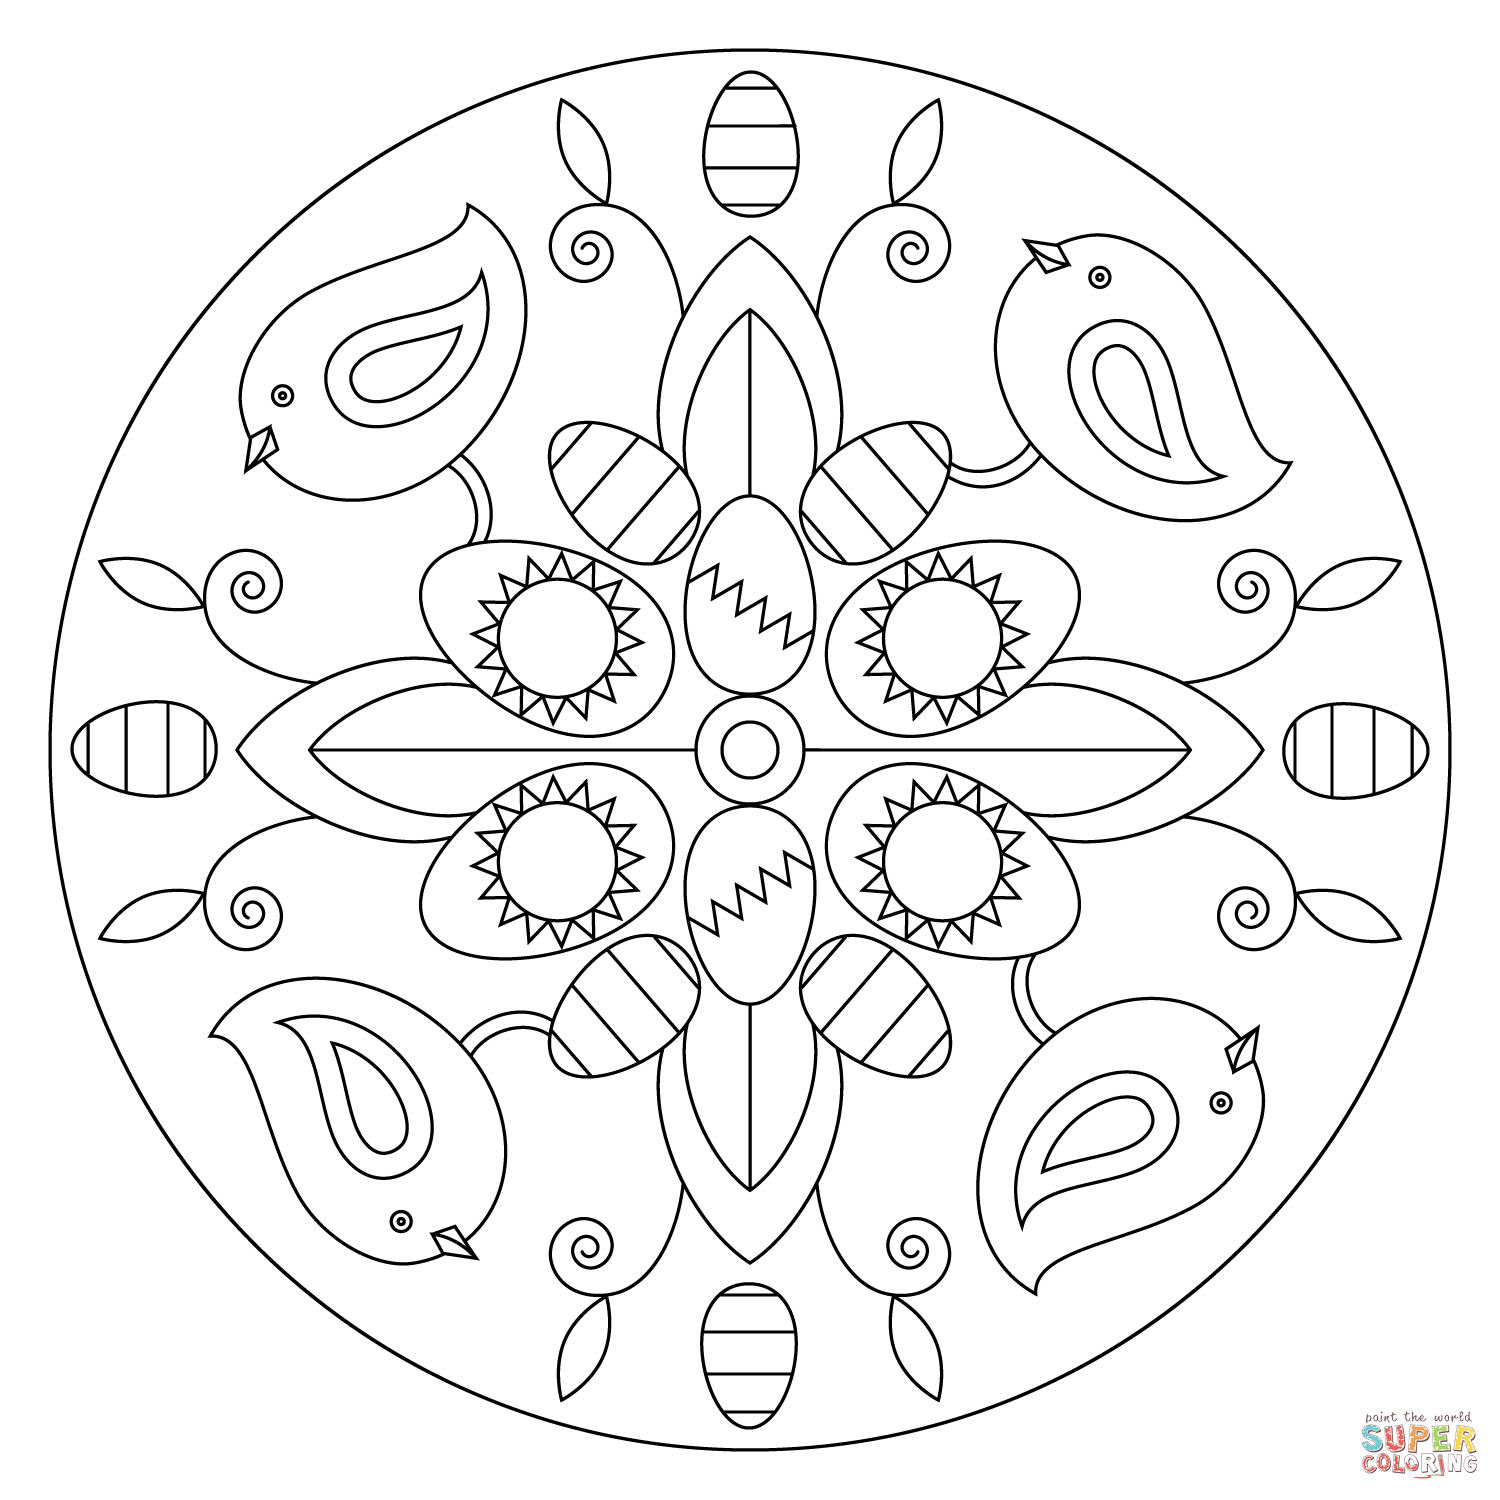 Easter Mandala With Birds And Eggs Super Coloring Easter Coloring Pages Coloring Pages Easter Colouring